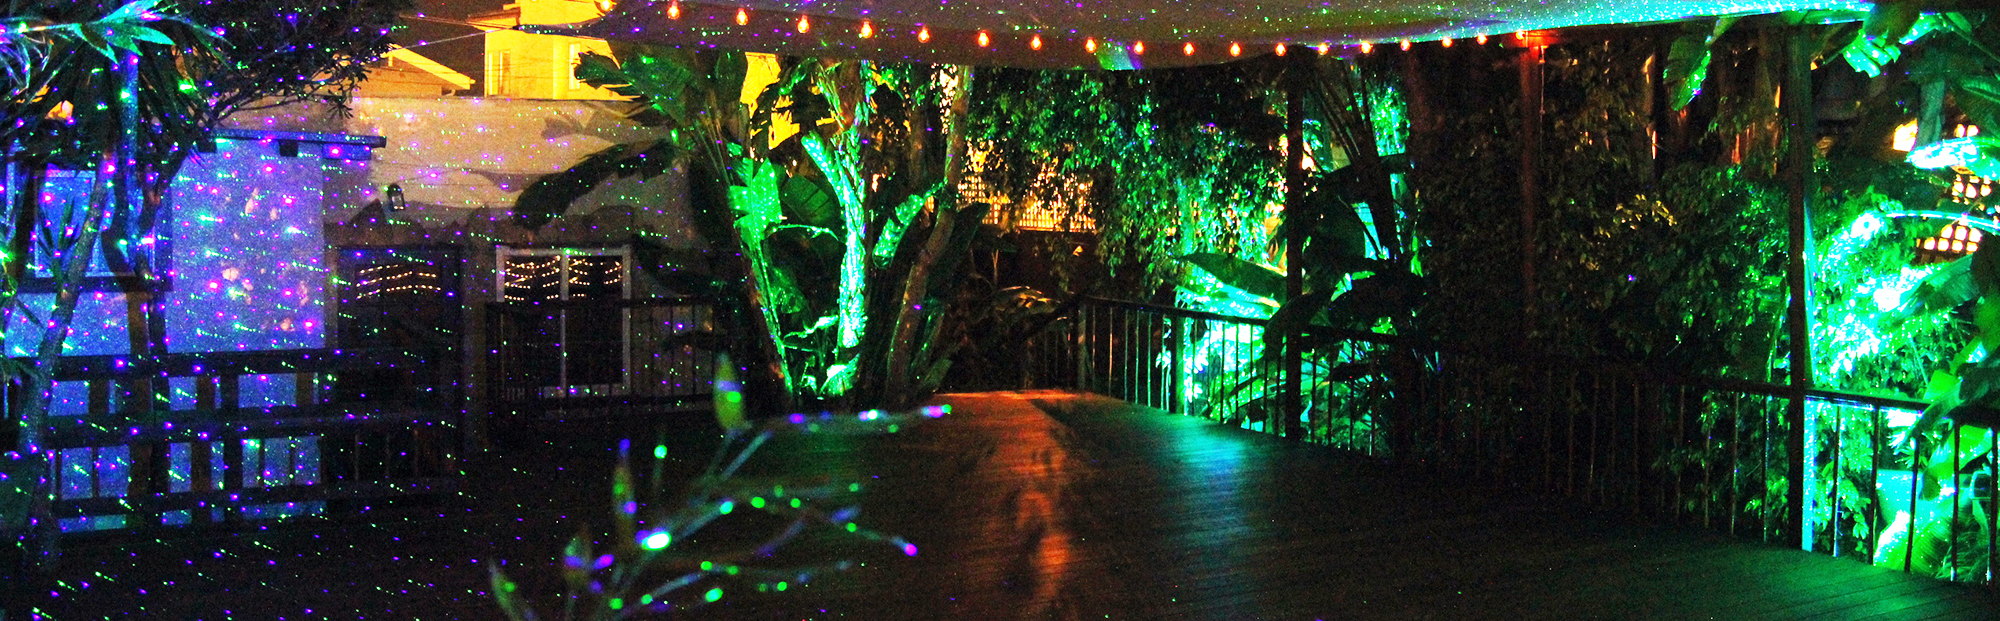 Nightime Shot of the Outdoor Yoga Deck at Riffs Studios in La Jolla